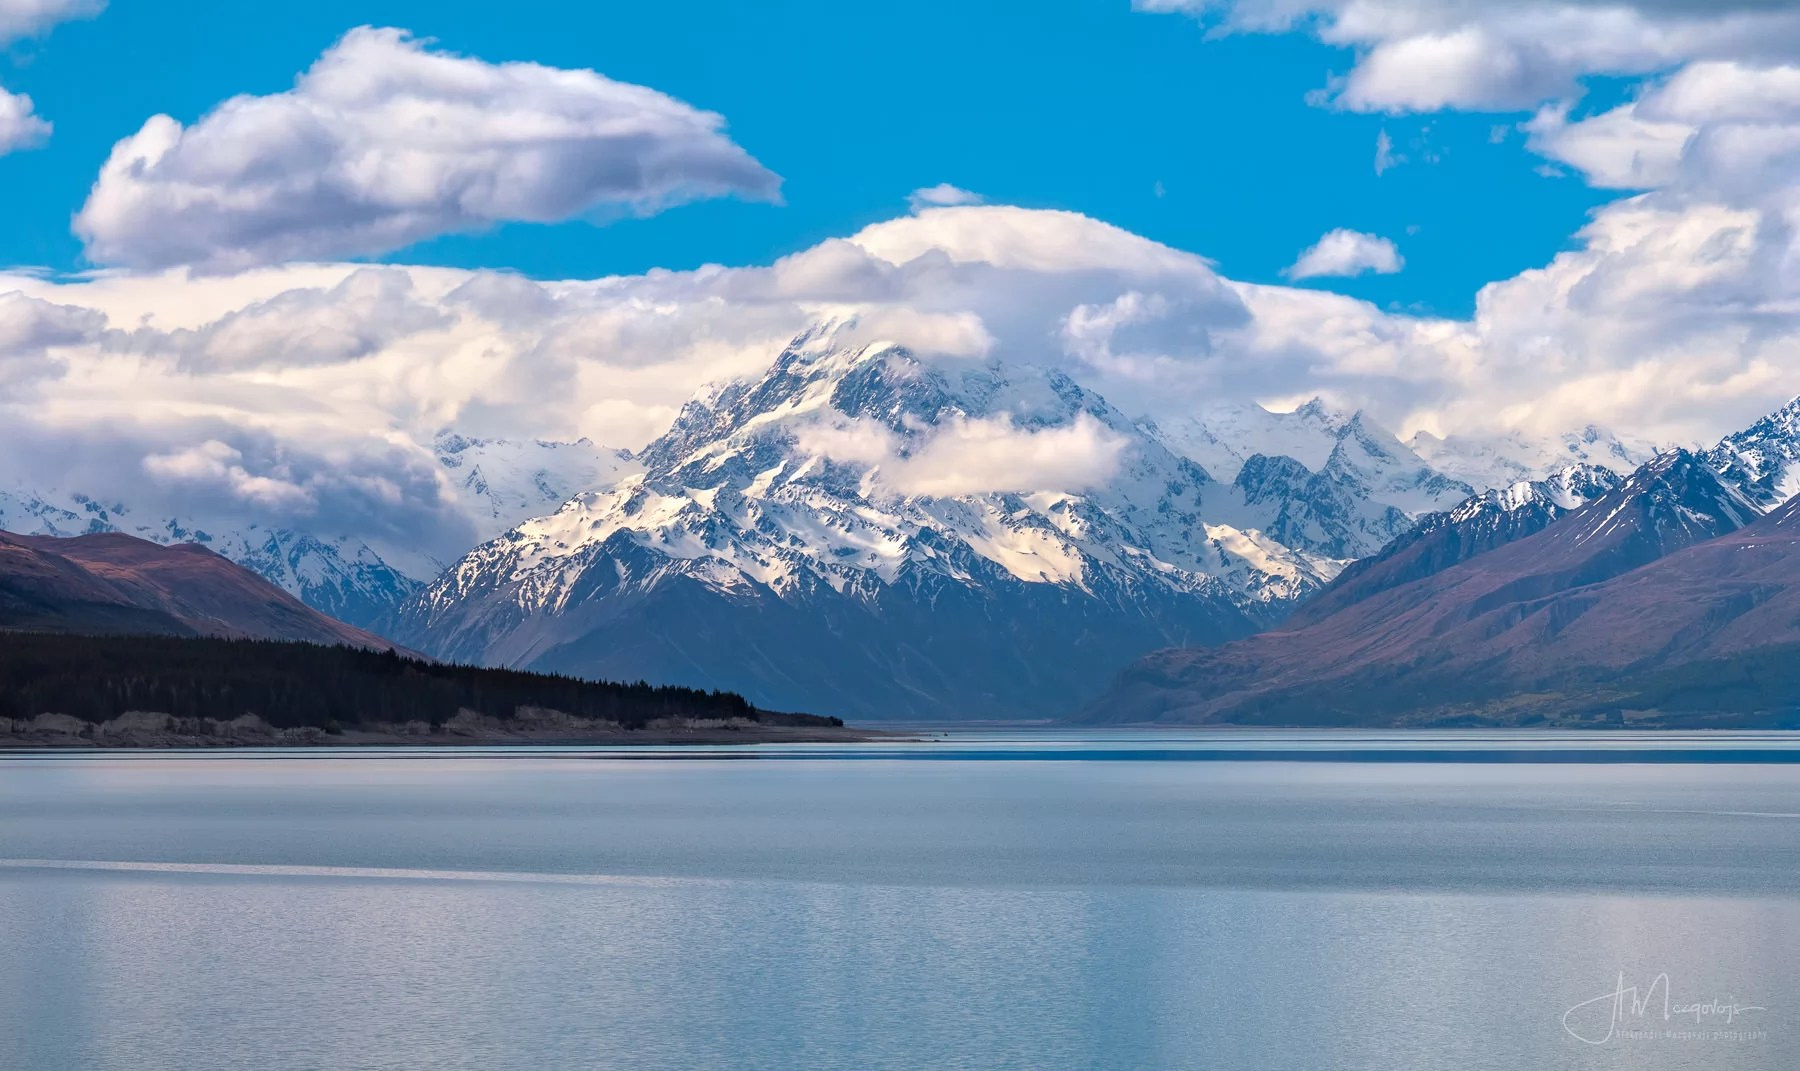 Mount Cook covered in clouds, New Zealand